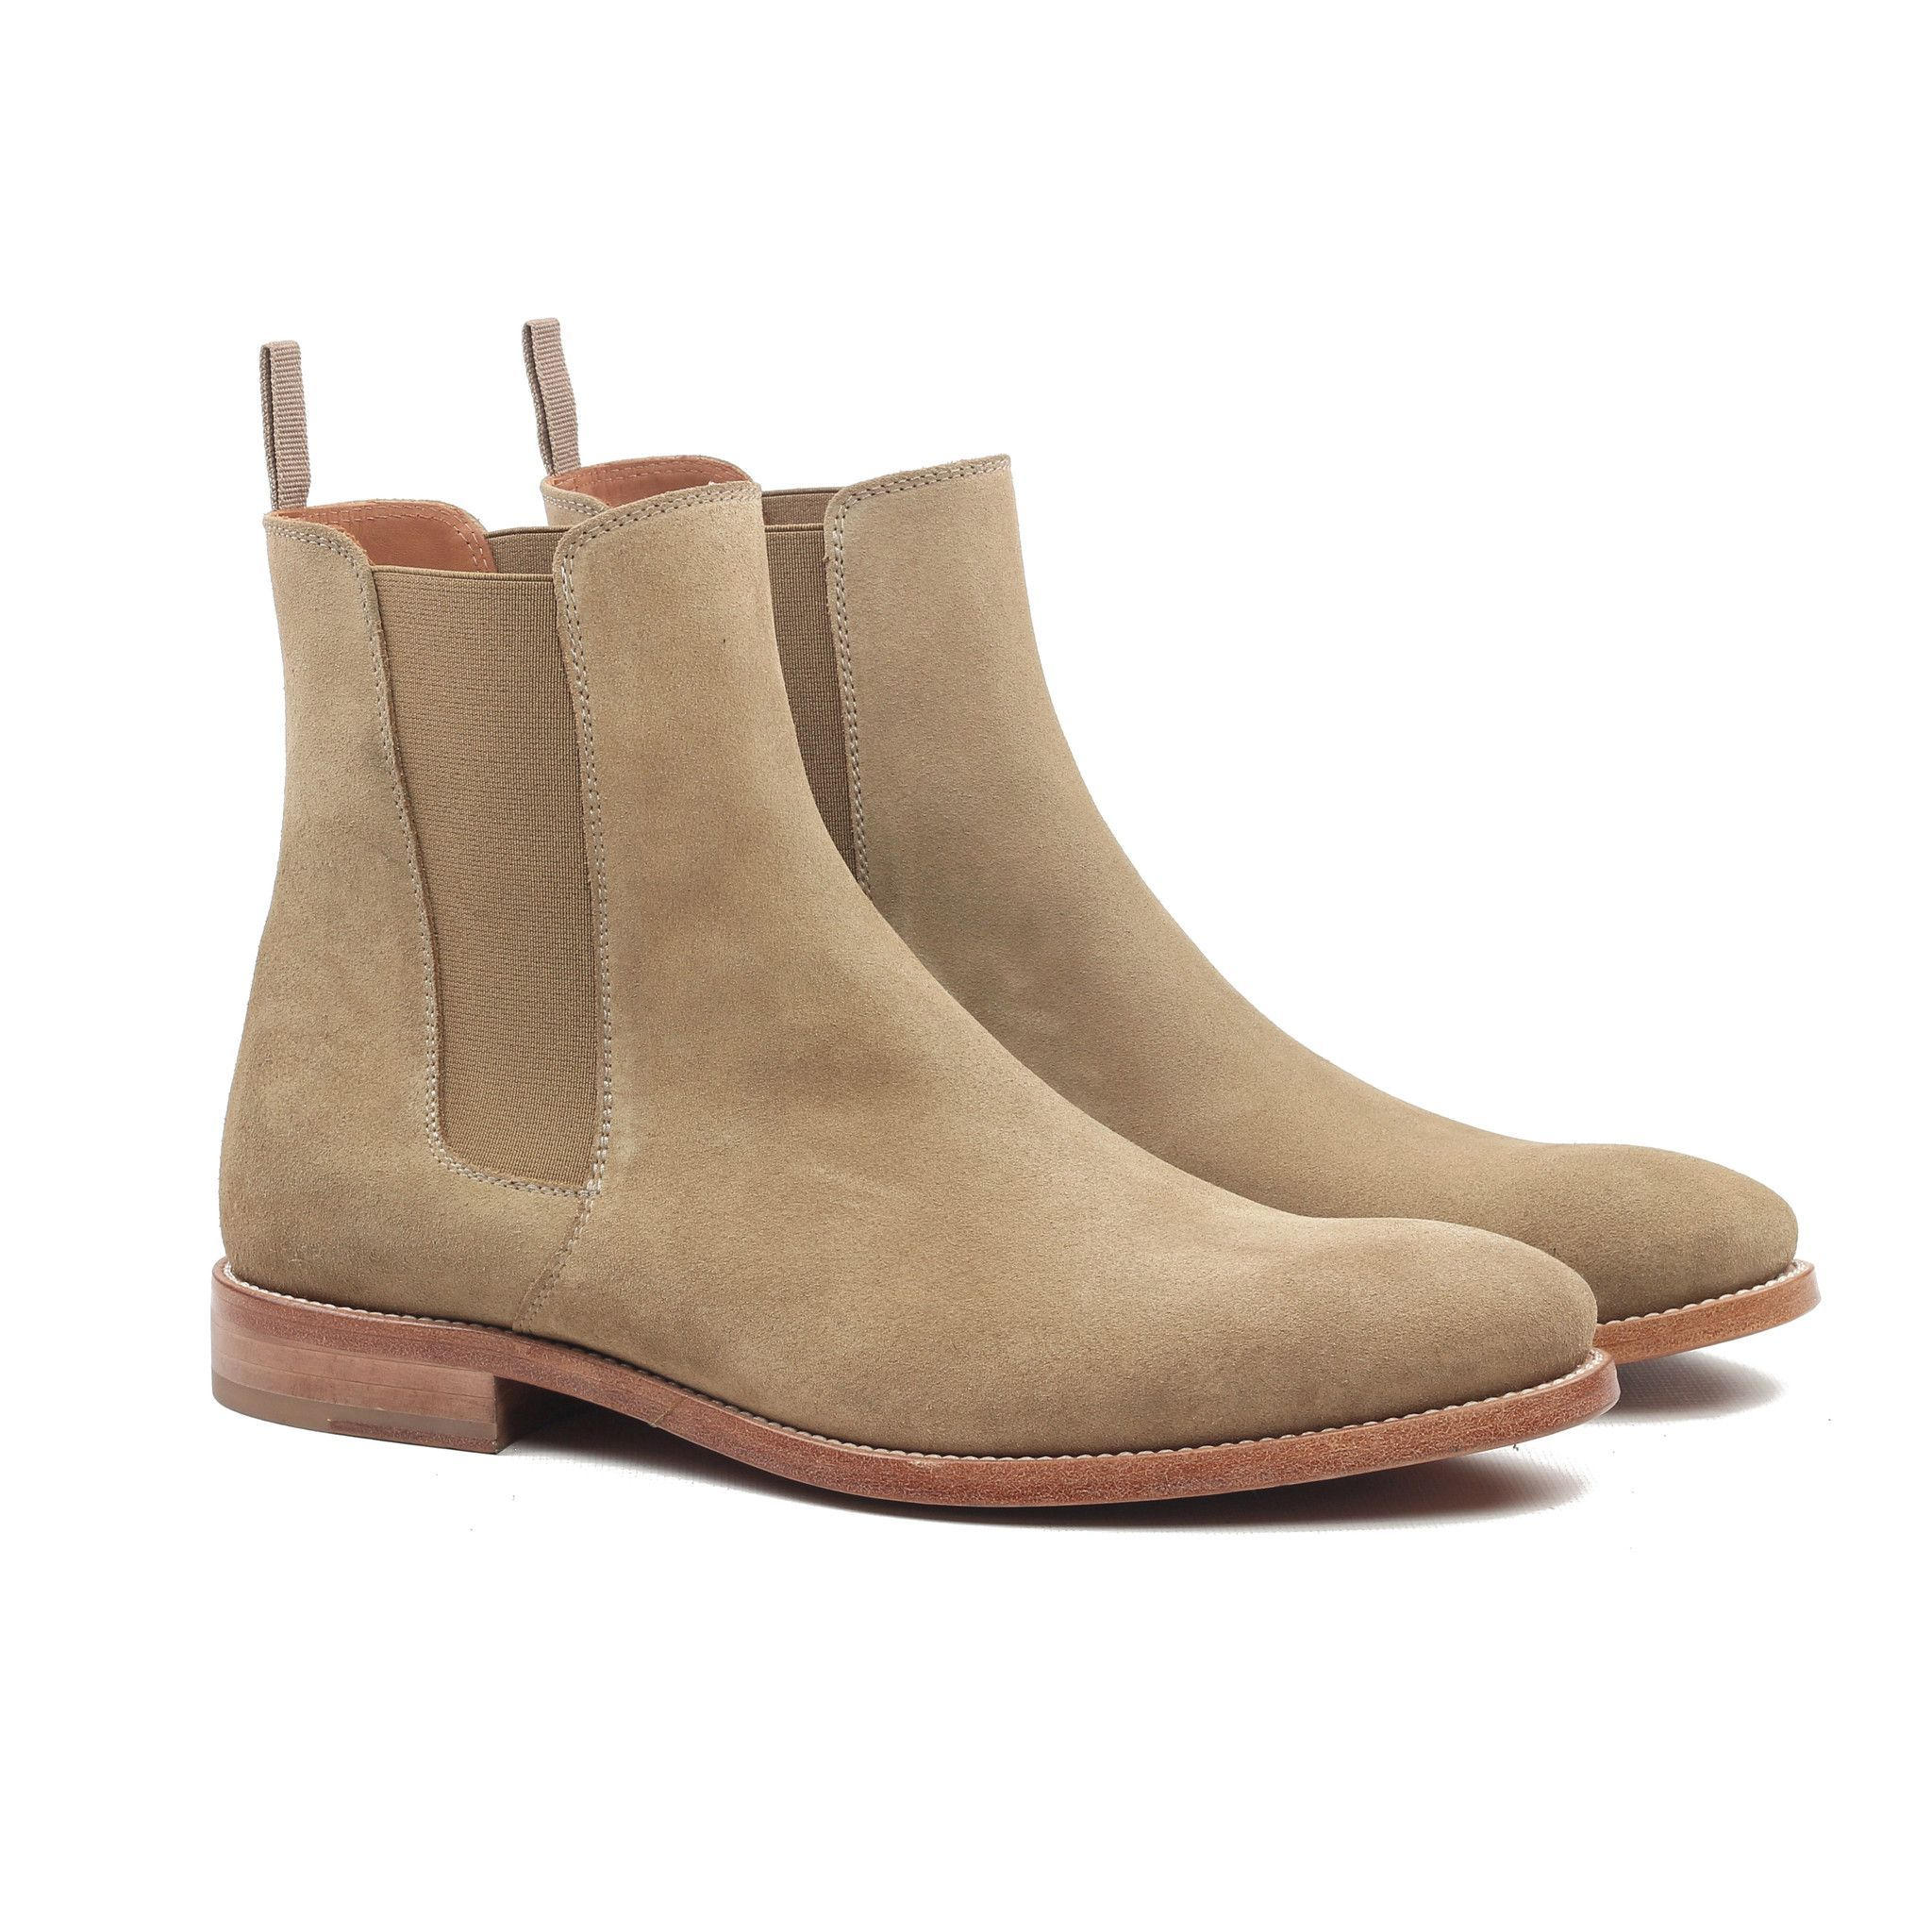 b241f7007b560 The classic tan chelsea boots in 2019 | me | Tan chelsea boots ...